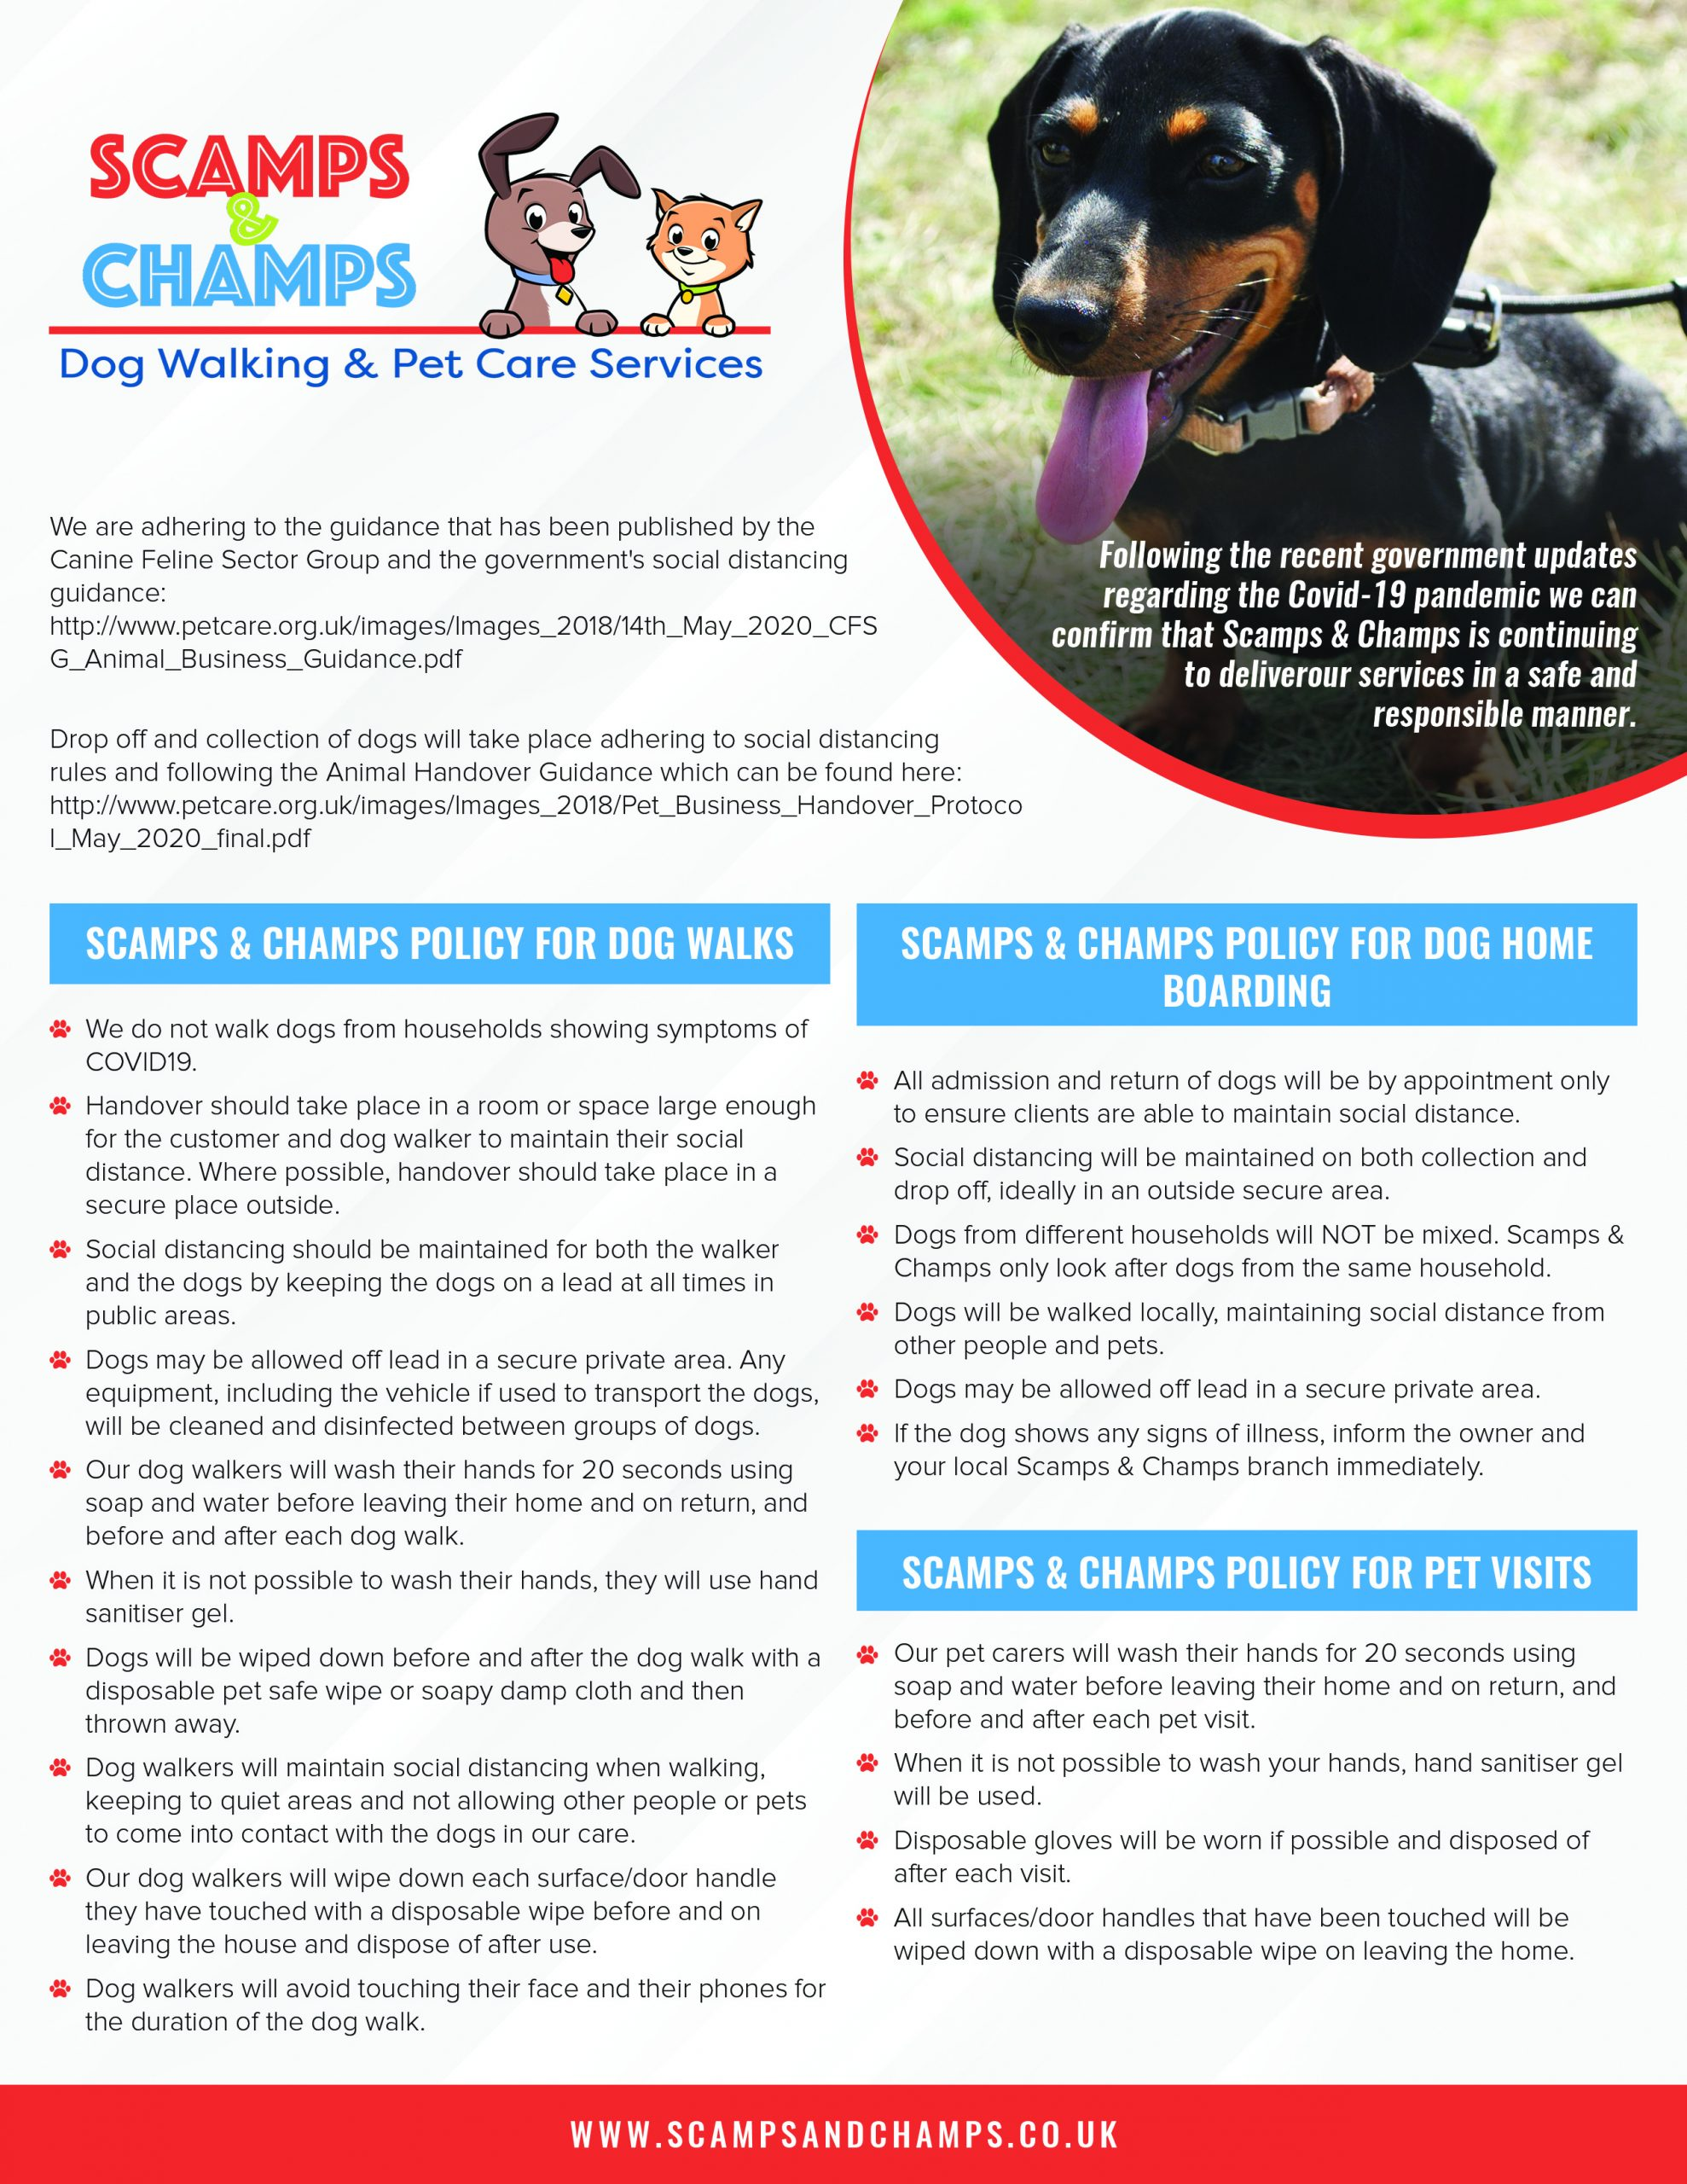 Scamps & Champs Covid Policy